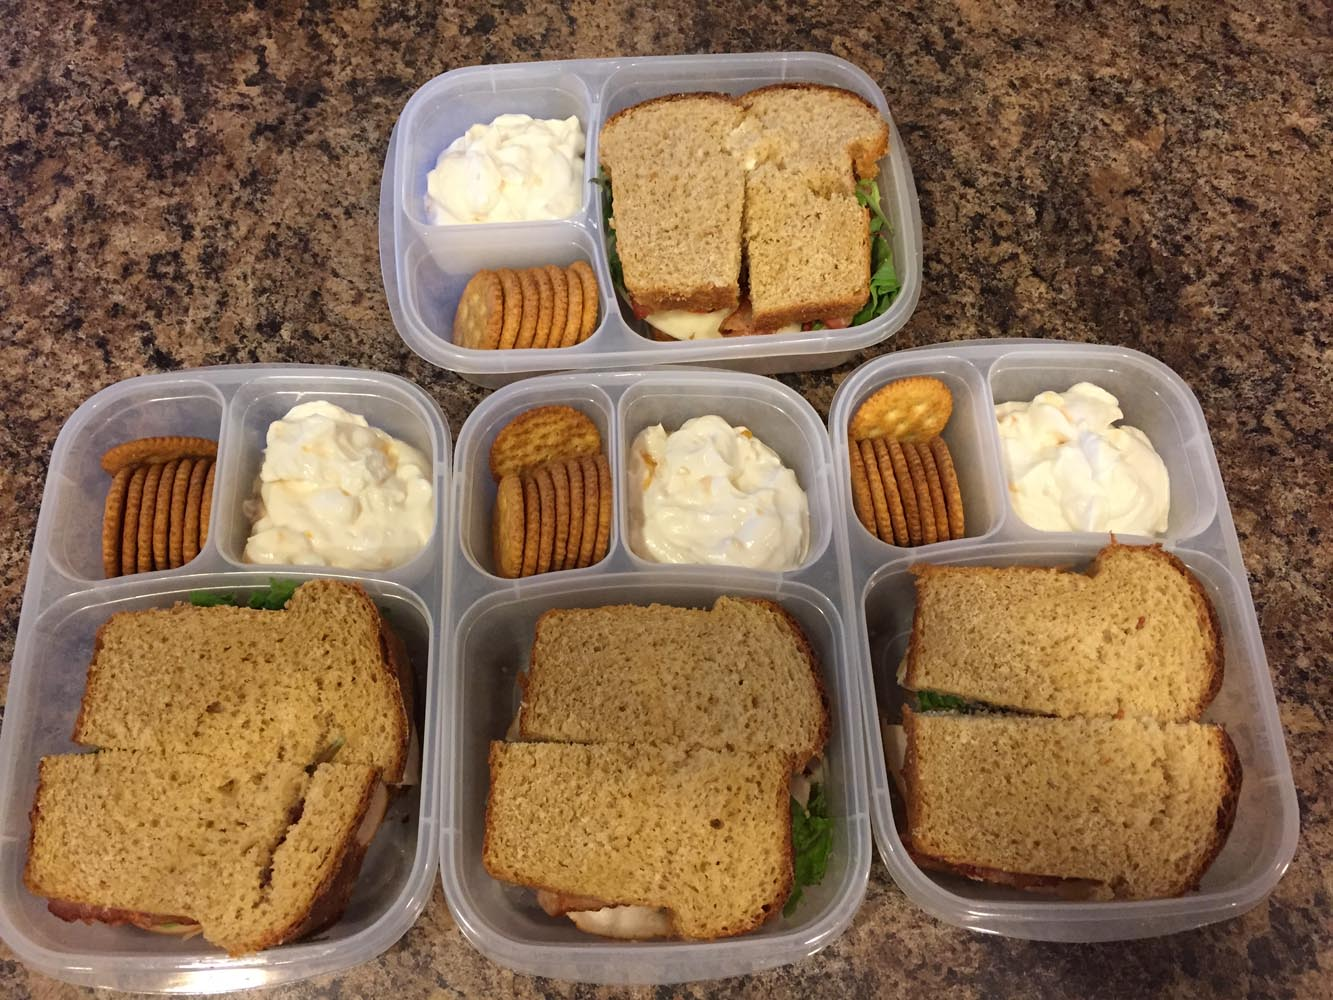 Turkey Sandwich with Crackers and Yogurt